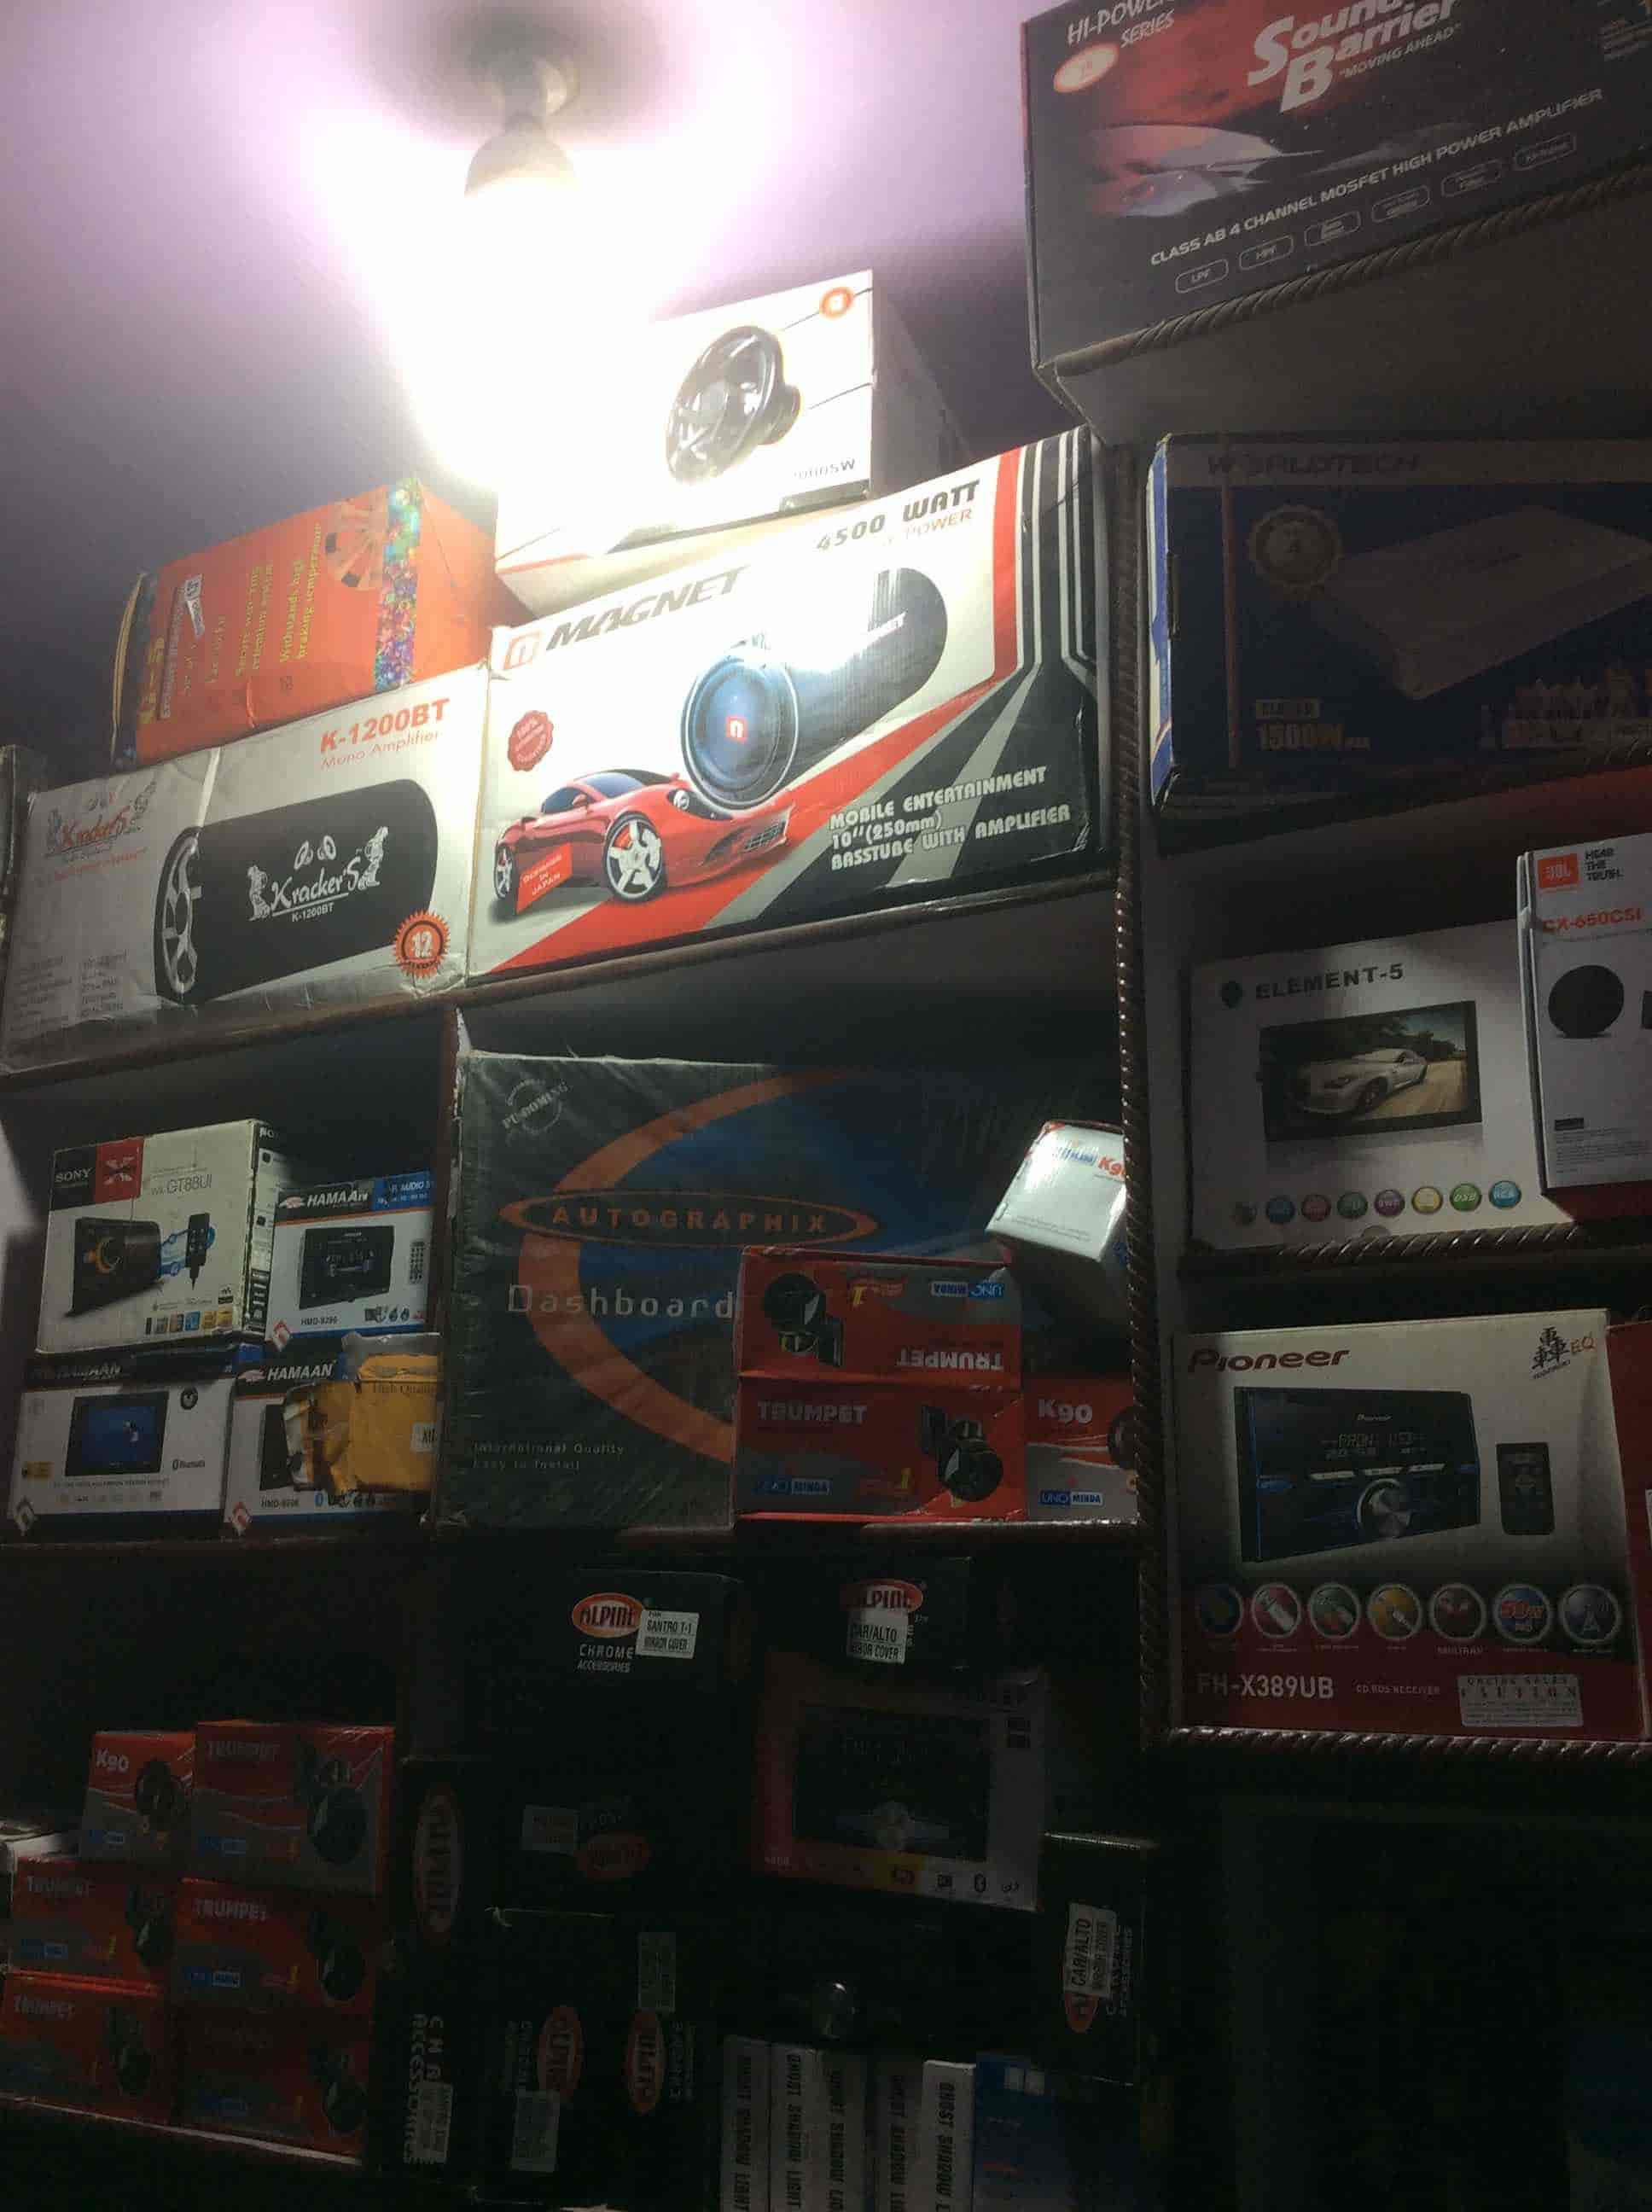 Carstar Accessories Photos Usmanpur Delhi Pictures Images Gallery